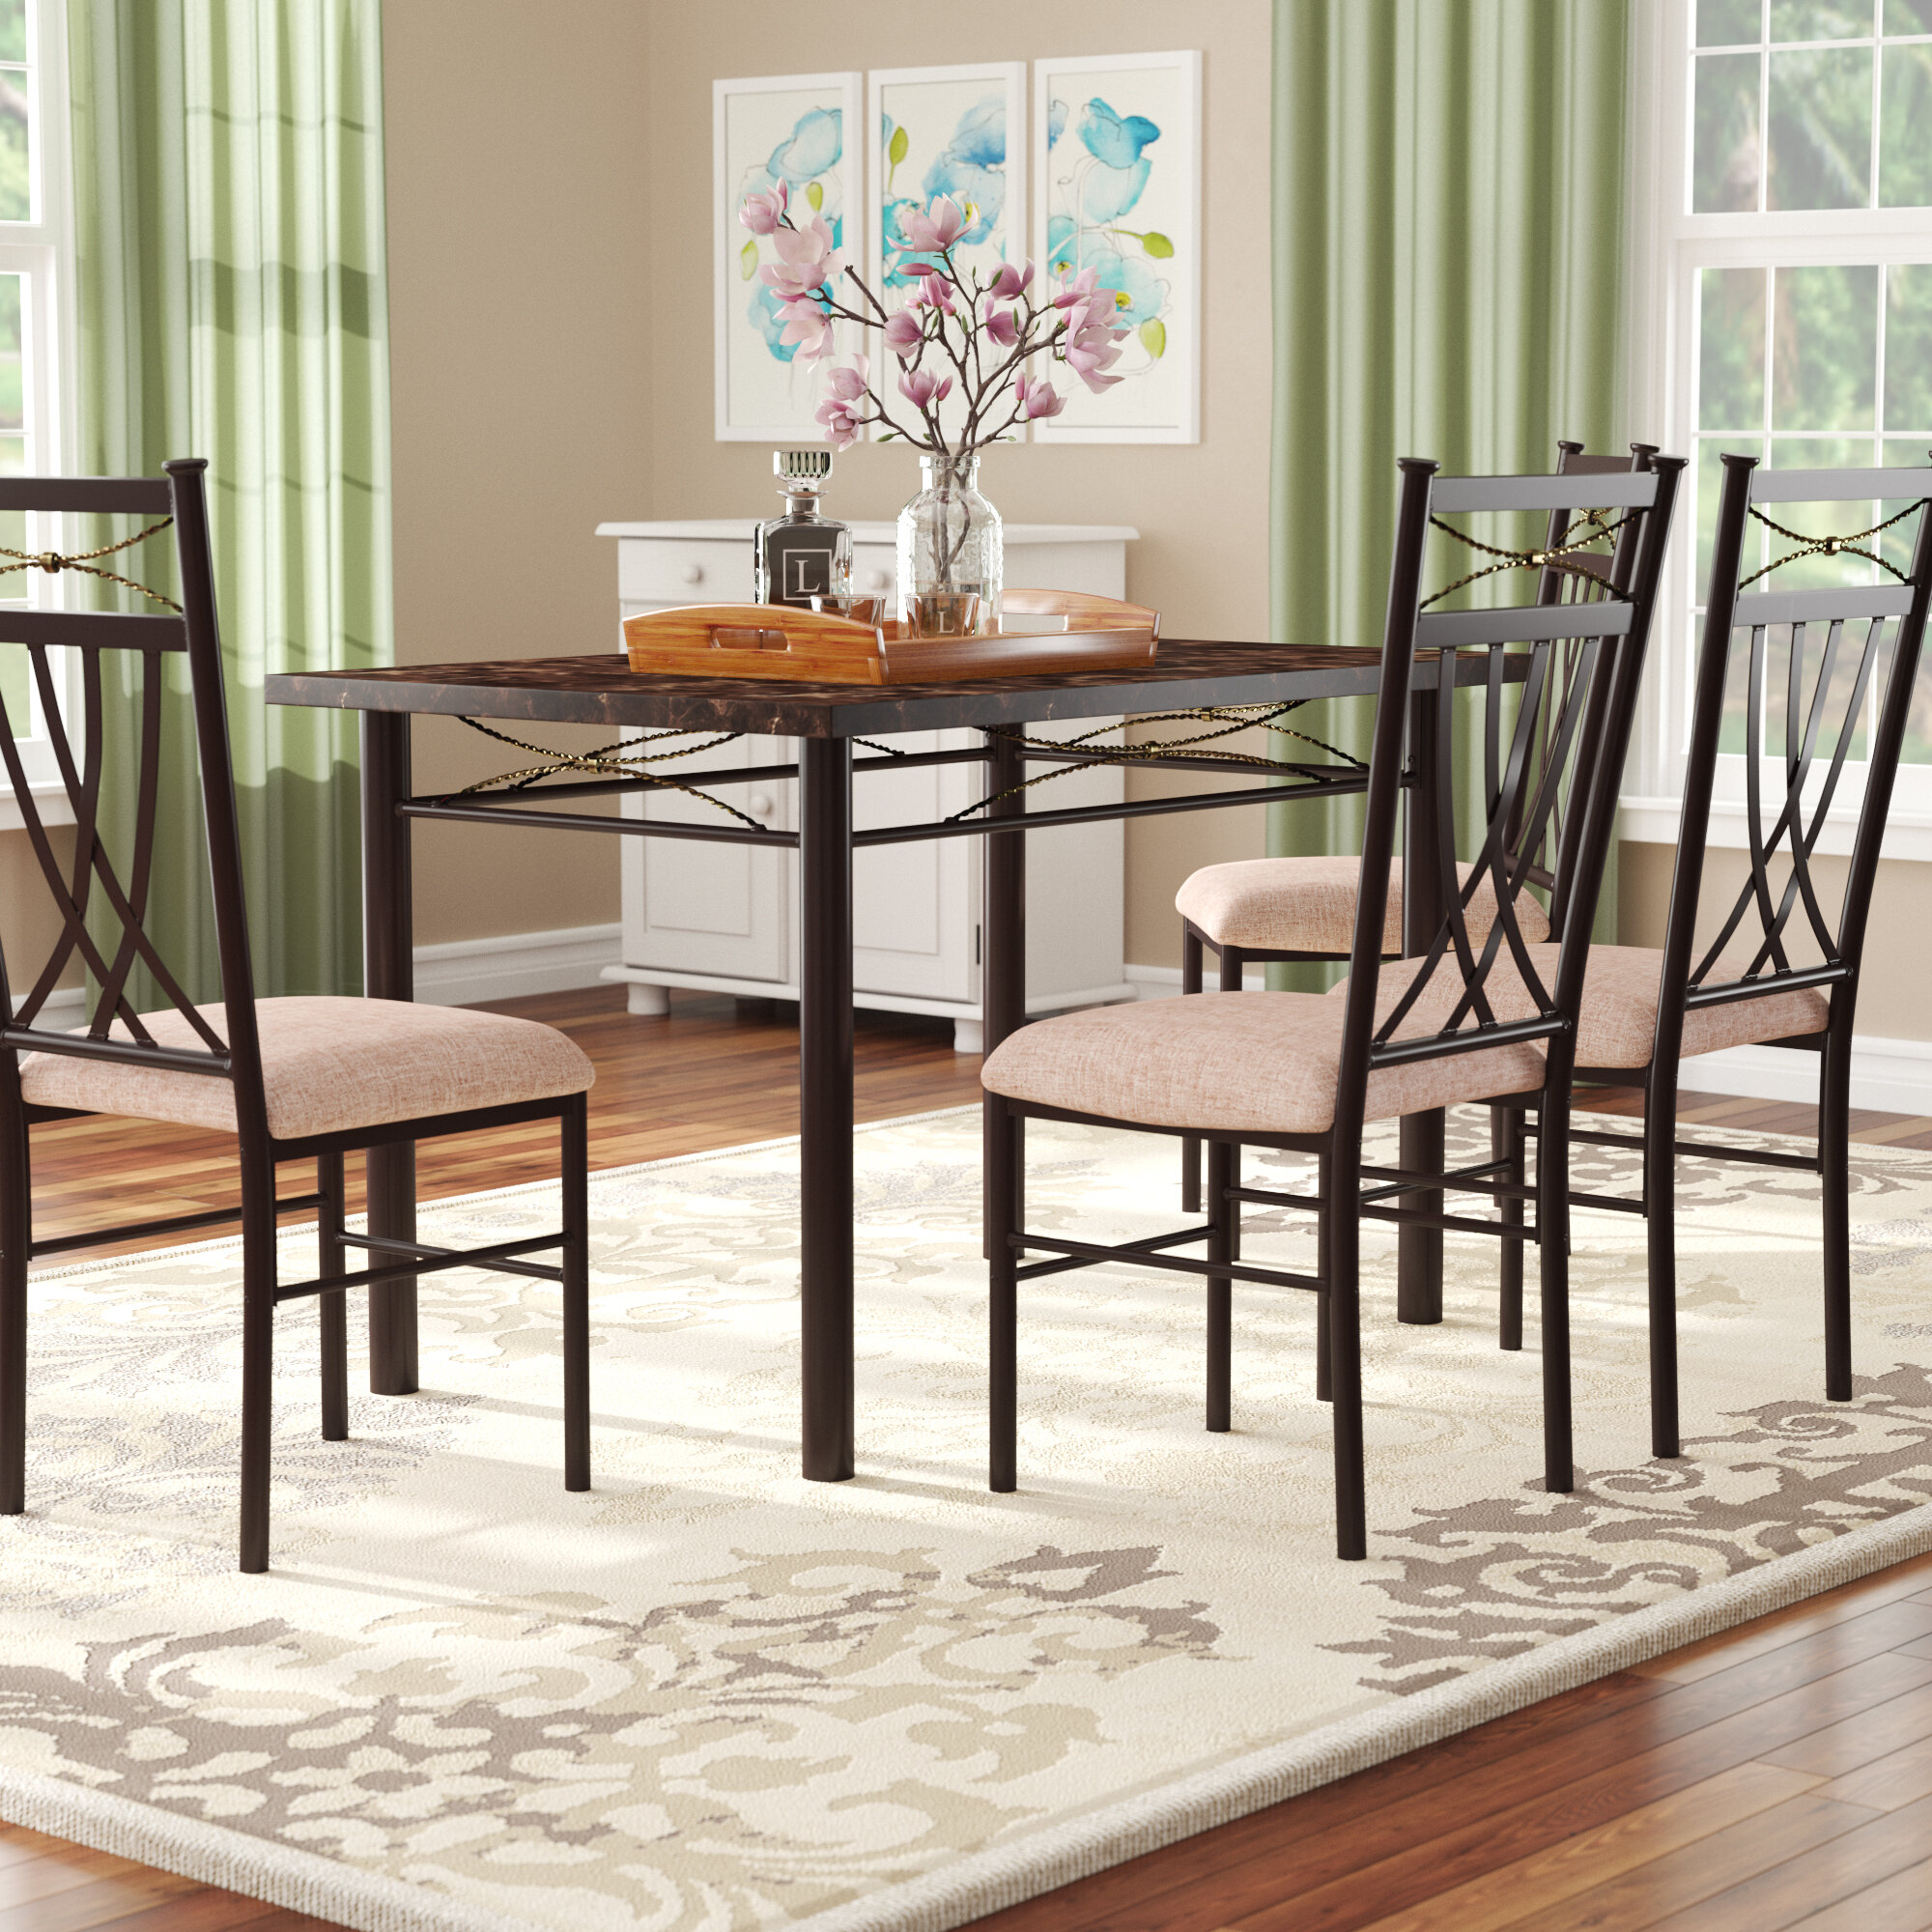 Branden 5 Piece Dining Set Pertaining To Current Kieffer 5 Piece Dining Sets (View 4 of 20)